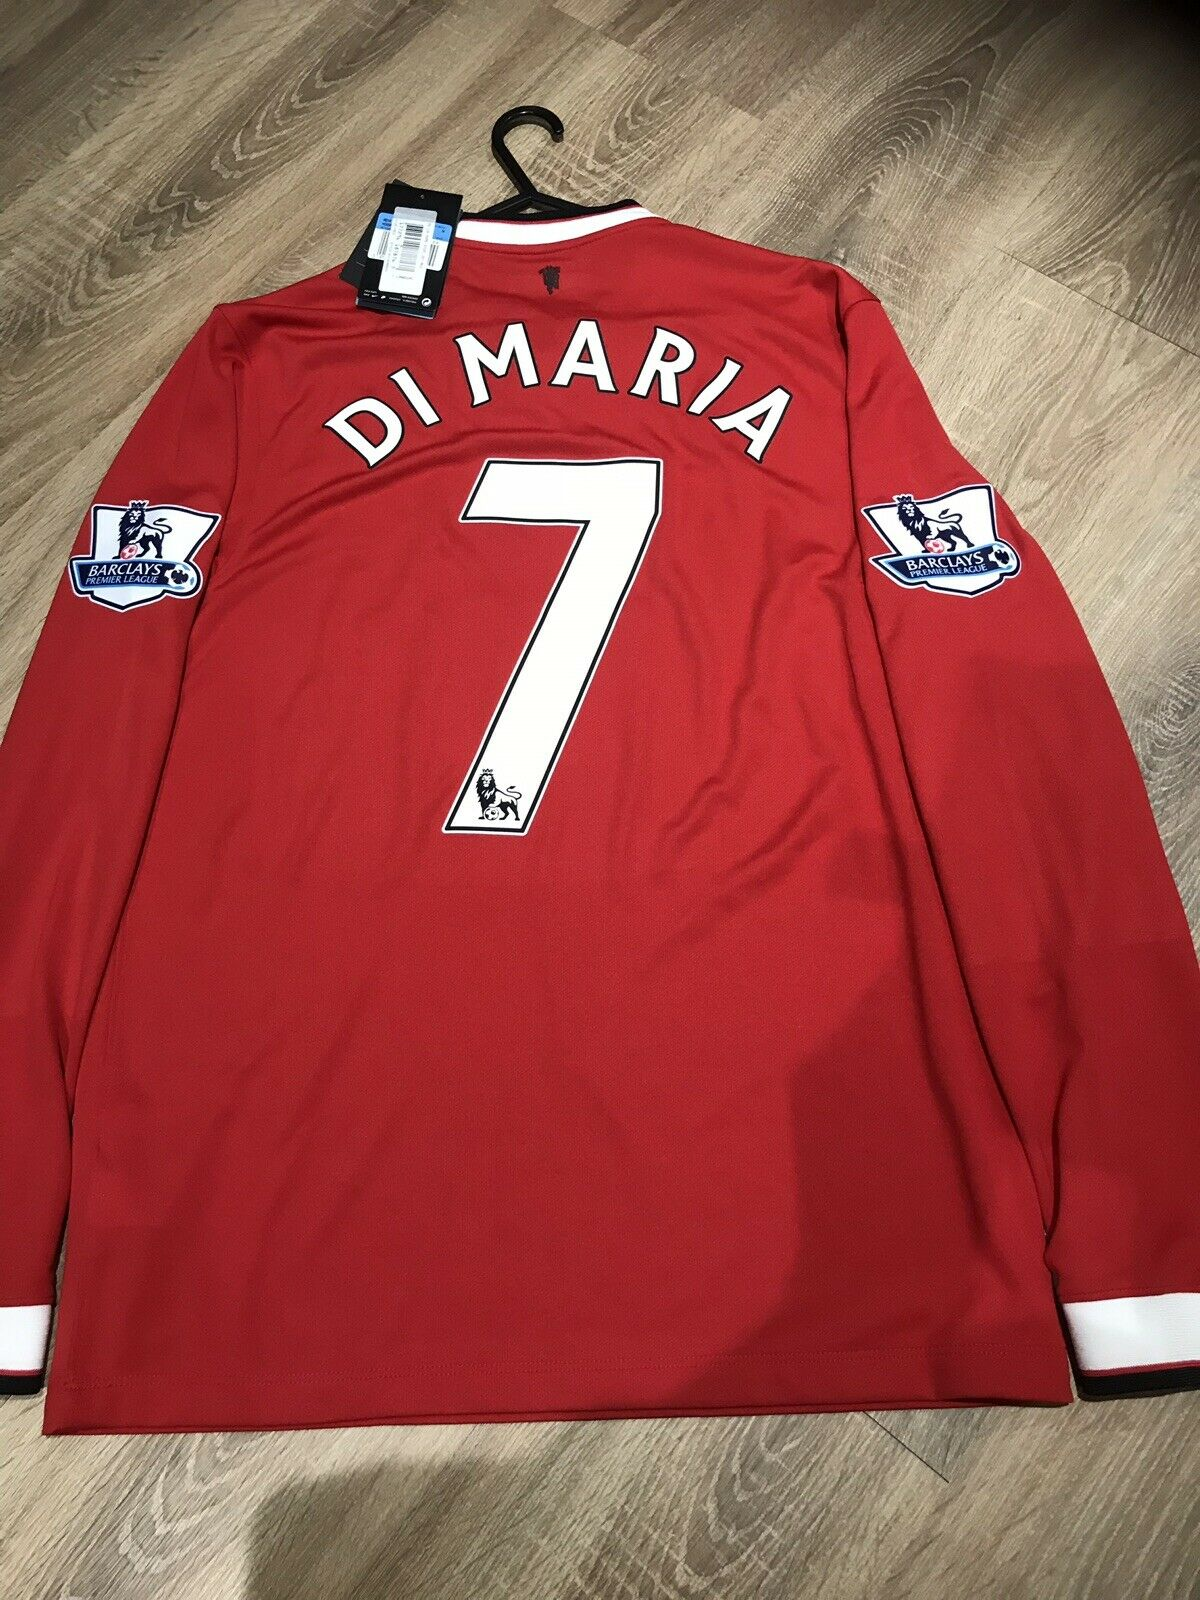 MANCHESTER UNITED 14 15 HOME SHIRT NEW LONG SLEEVES ADULTS(M) 7 DI MARIA